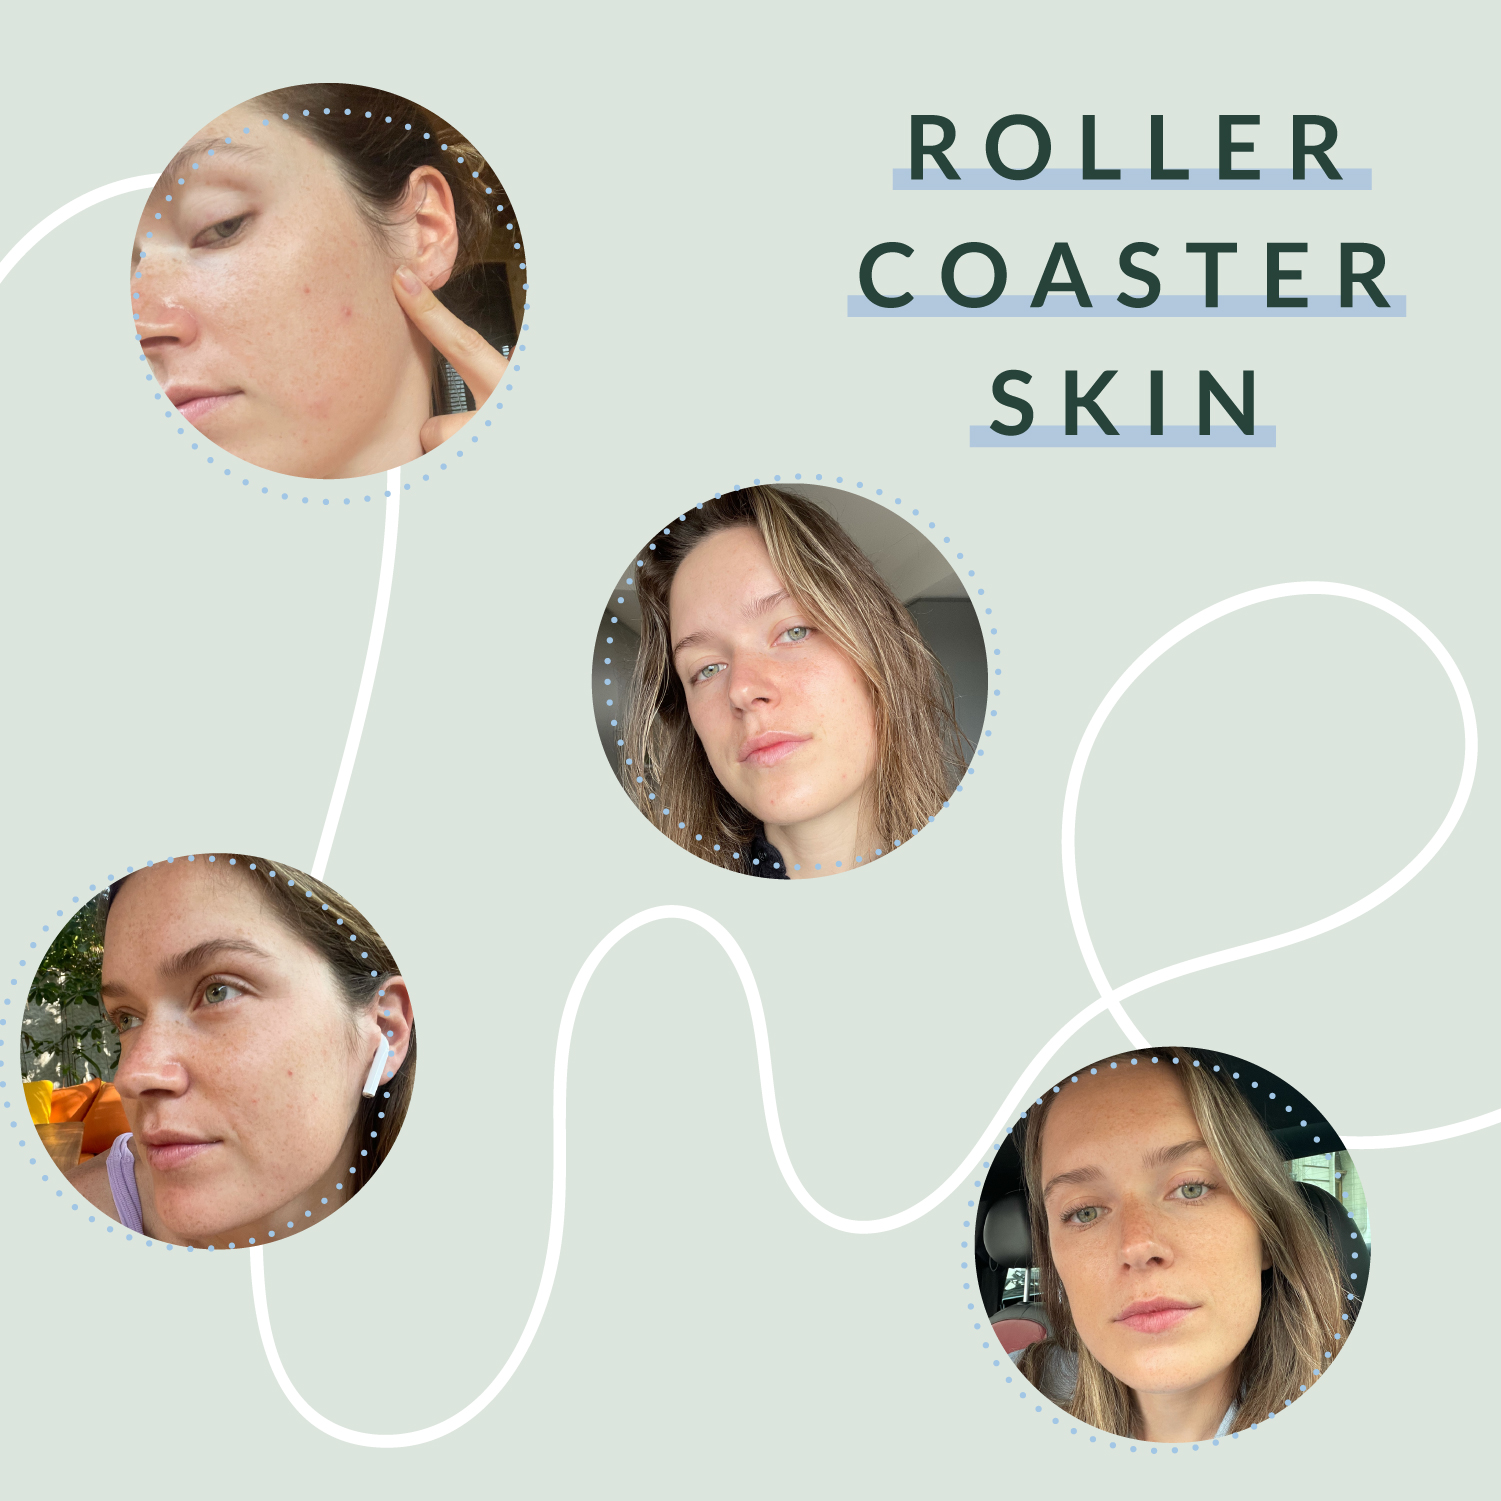 What exactly is rollercoaster skin?